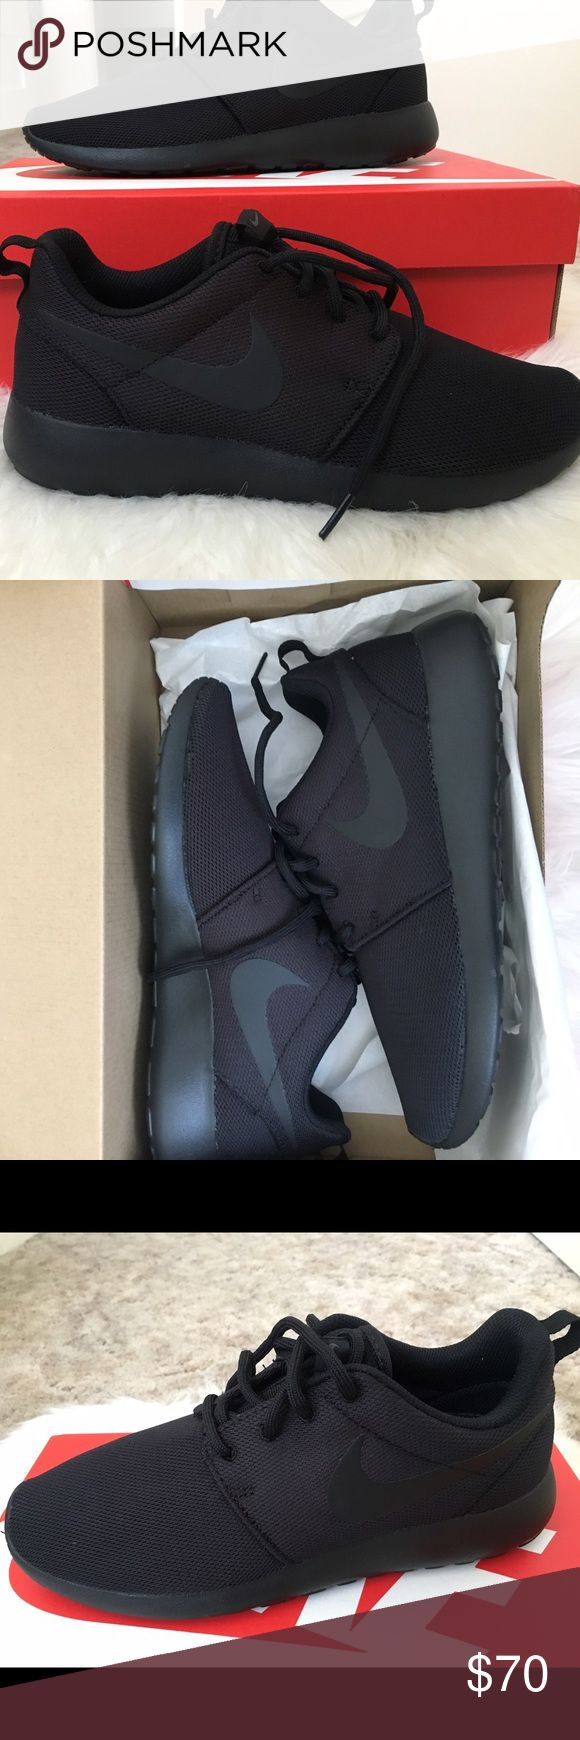 NIKE roche ALL BLACK BRAND NEW all black NIKE roches!!! Got the wrong size delivered so They have never been worn. I have two pairs. Both are absolutely brand new. Wish they could fit me ☹️ Nike Shoes Sneakers